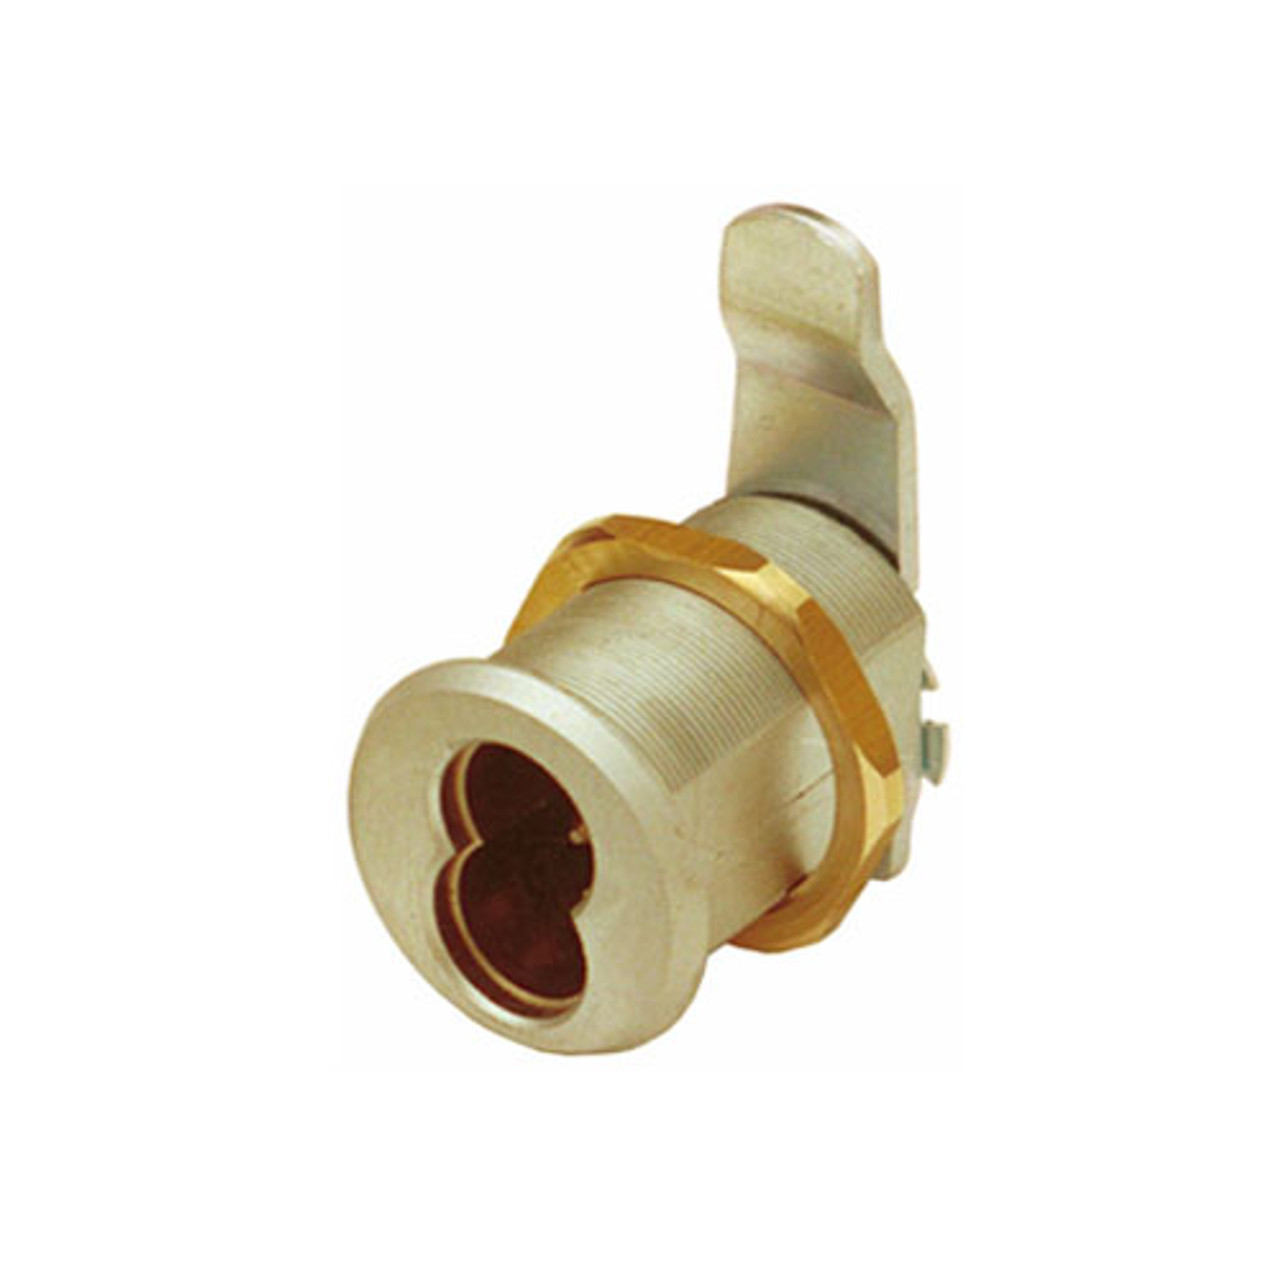 Olympus 720LM/DM-US4-IC Cam Lock for Removable Core in Satin Brass